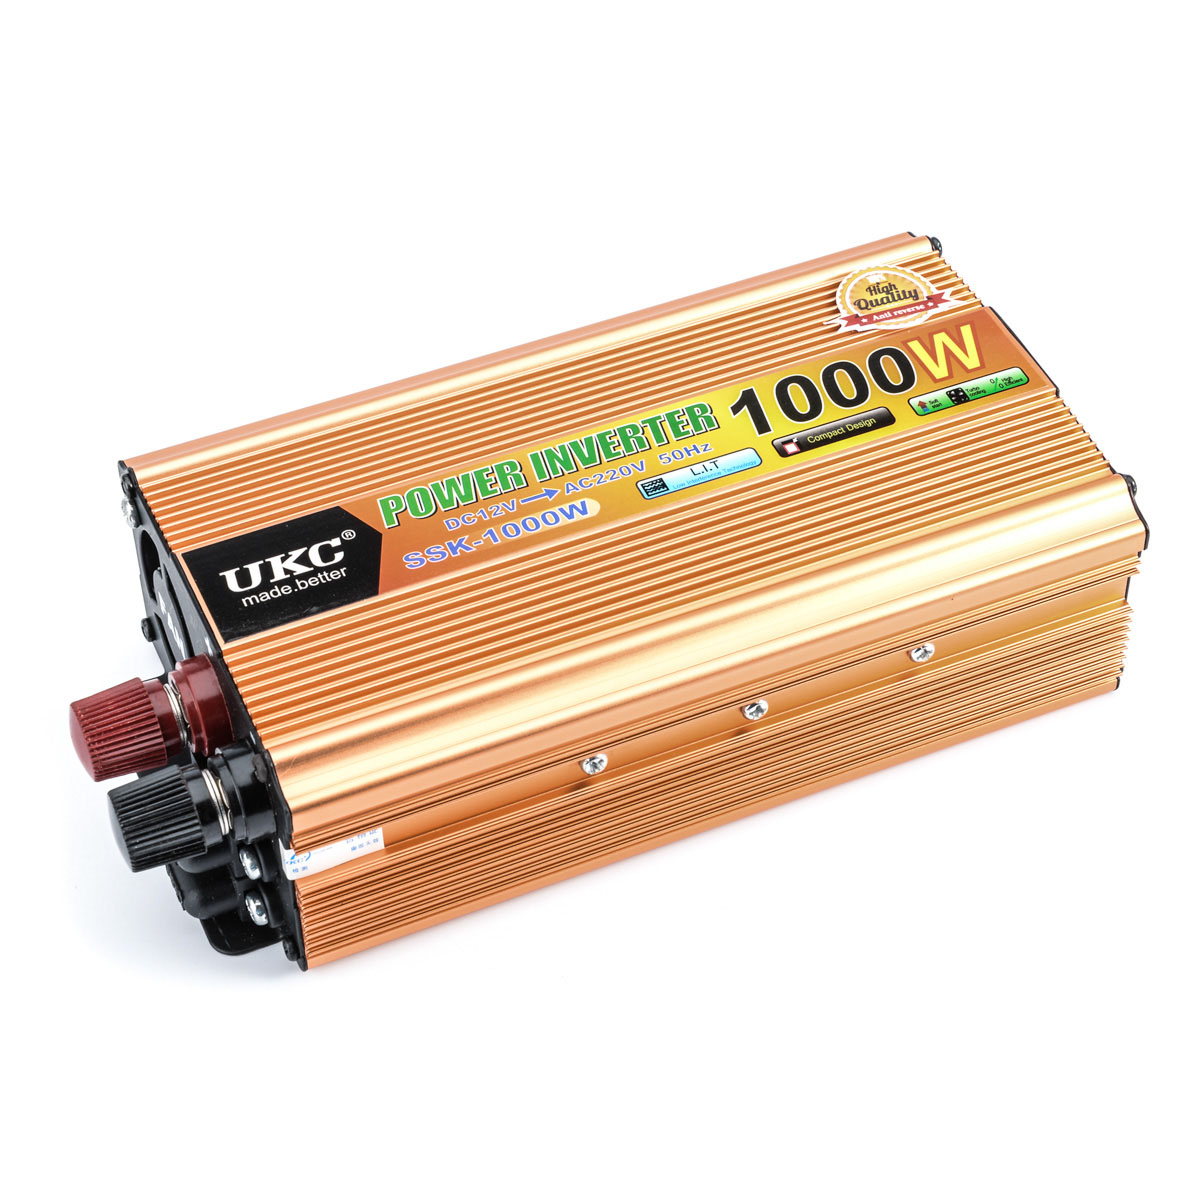 font b Car b font inverter 1000W 12V 220V DC 12 v to AC 220